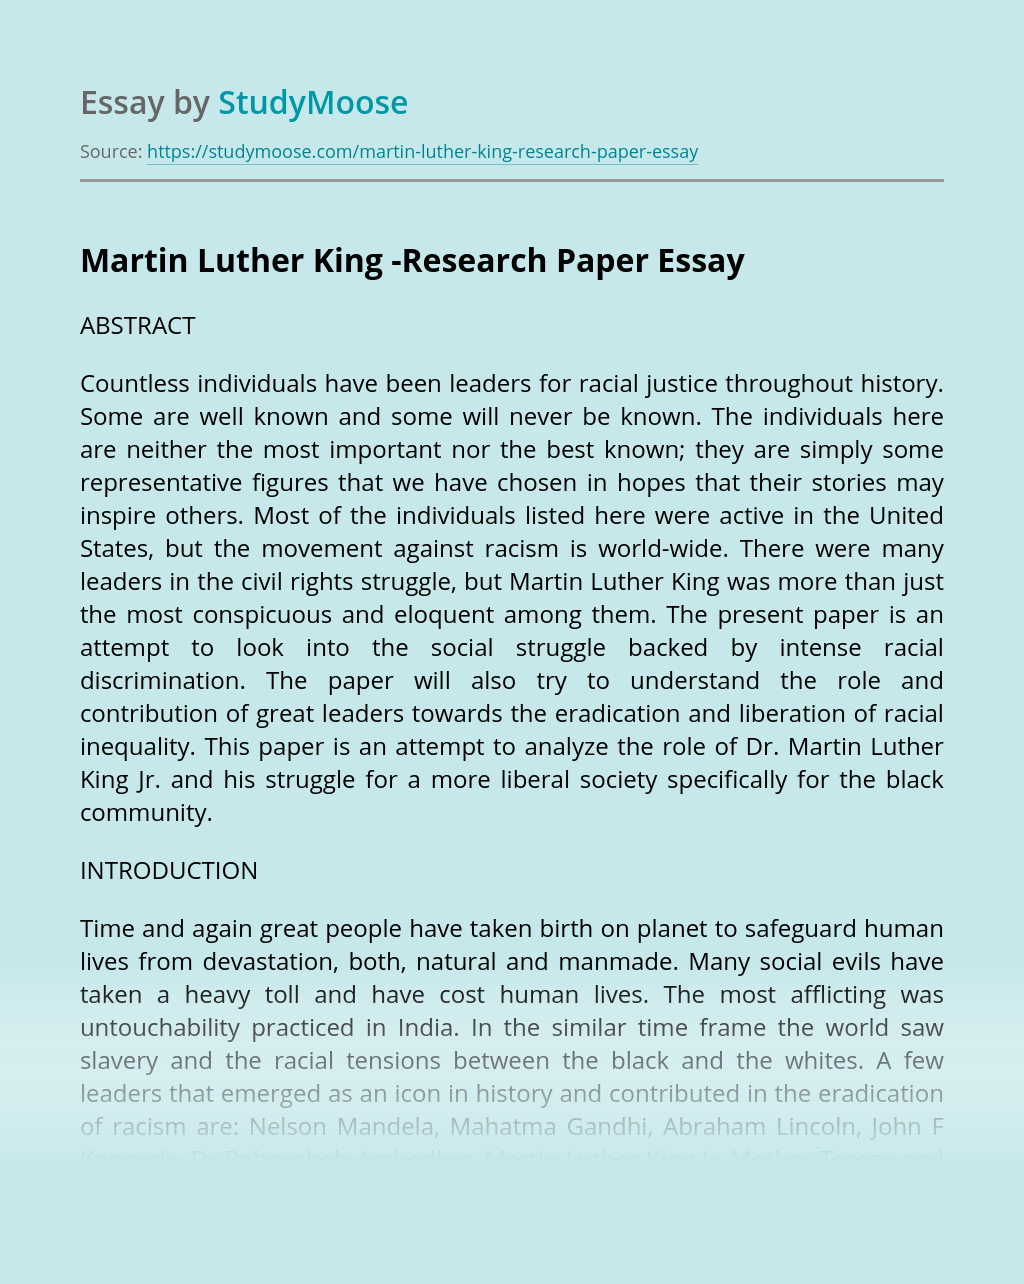 Martin Luther King -Research Paper